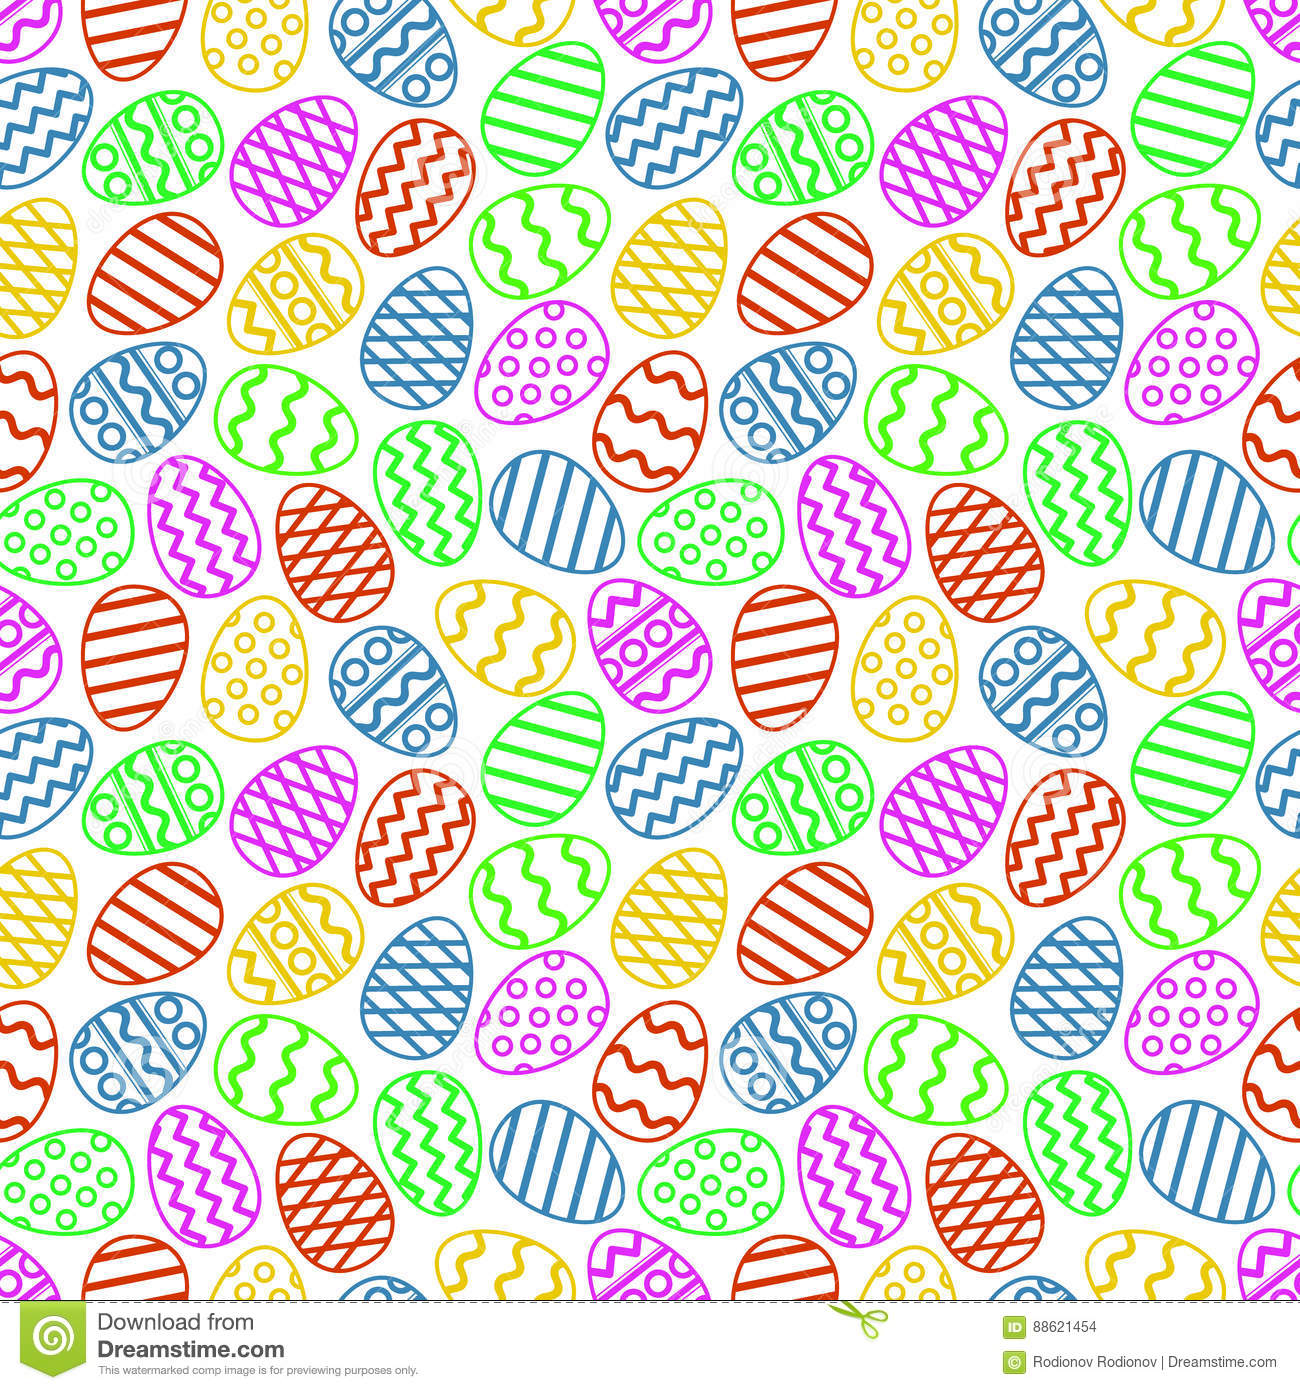 Easter eggs colorful seamless pattern. Vector illustration.